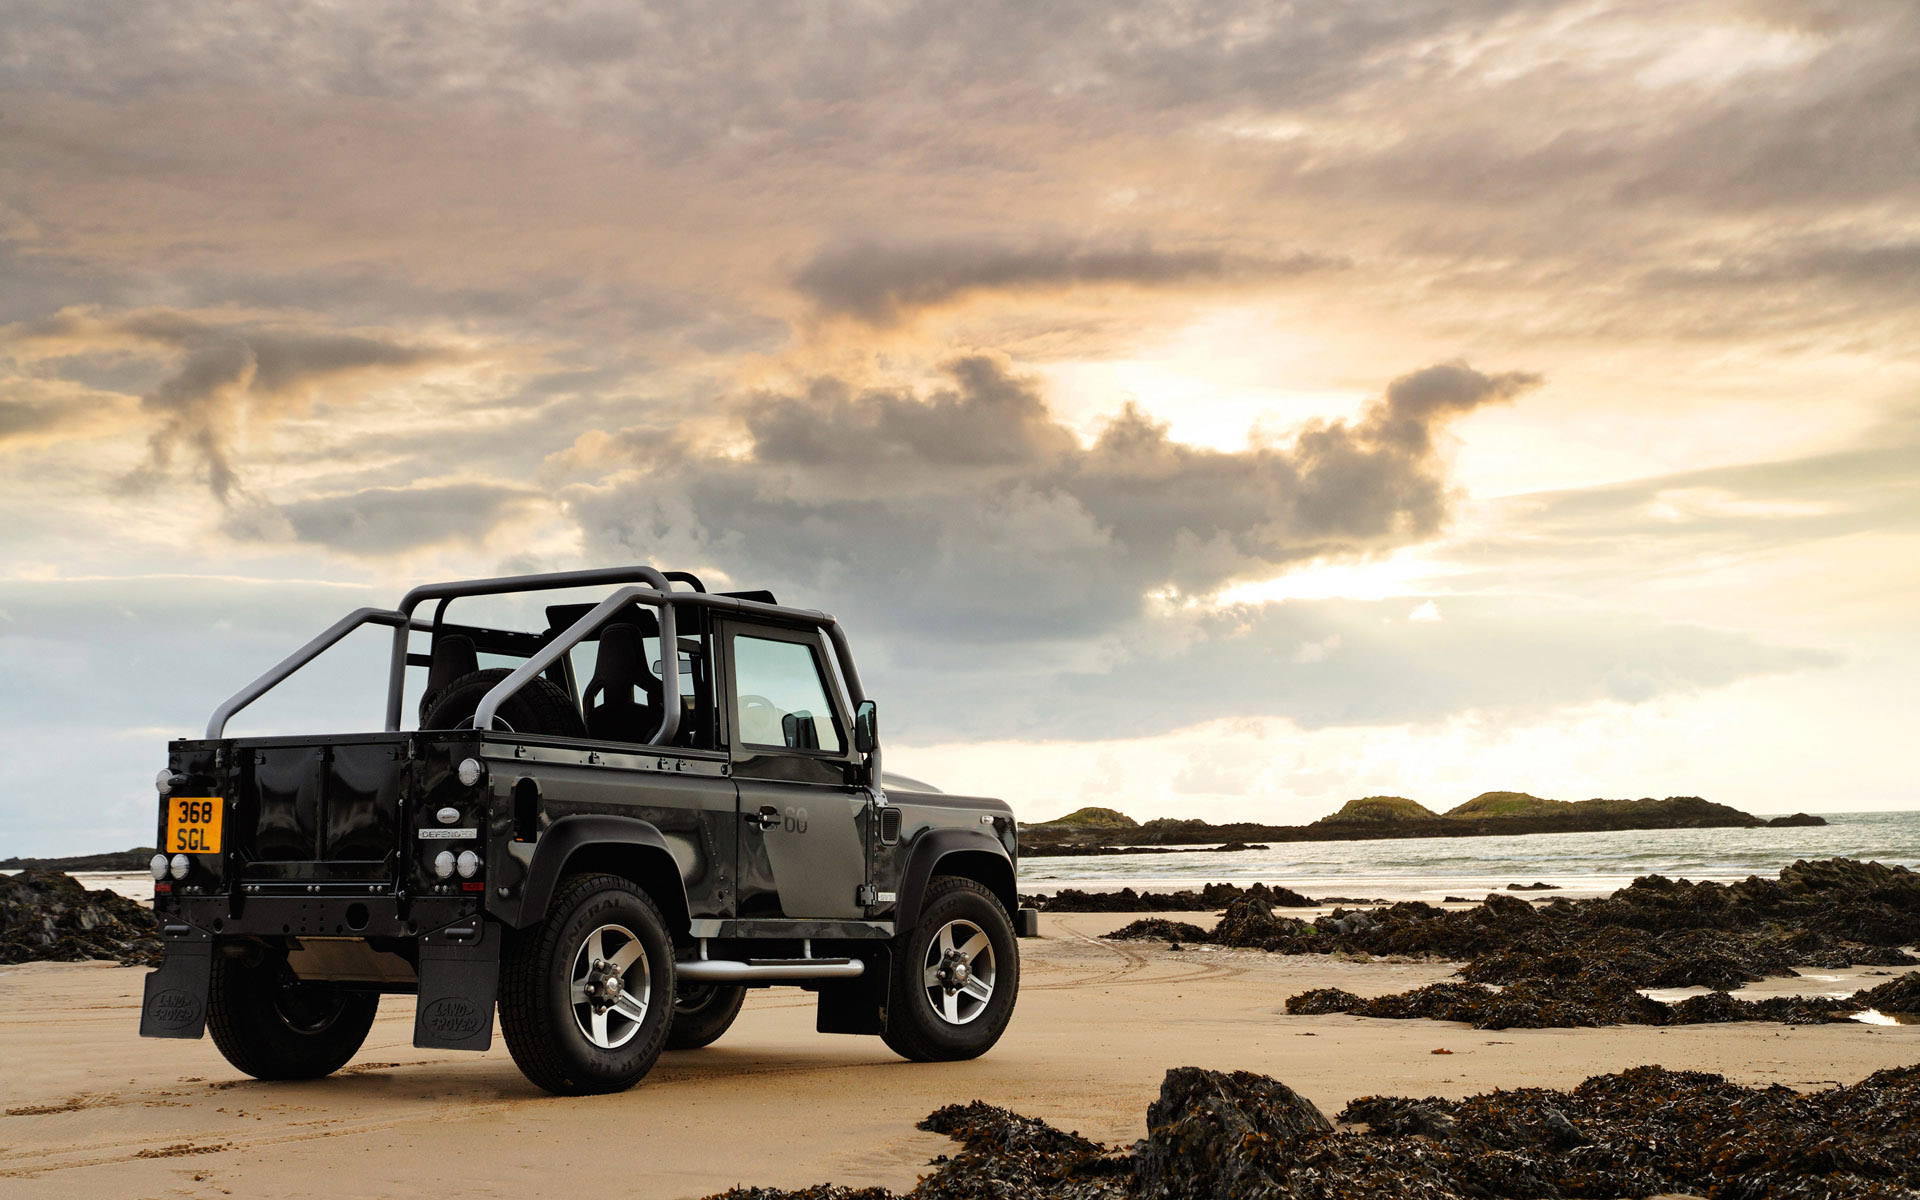 Black Land Rover Defender, the photo on the coast